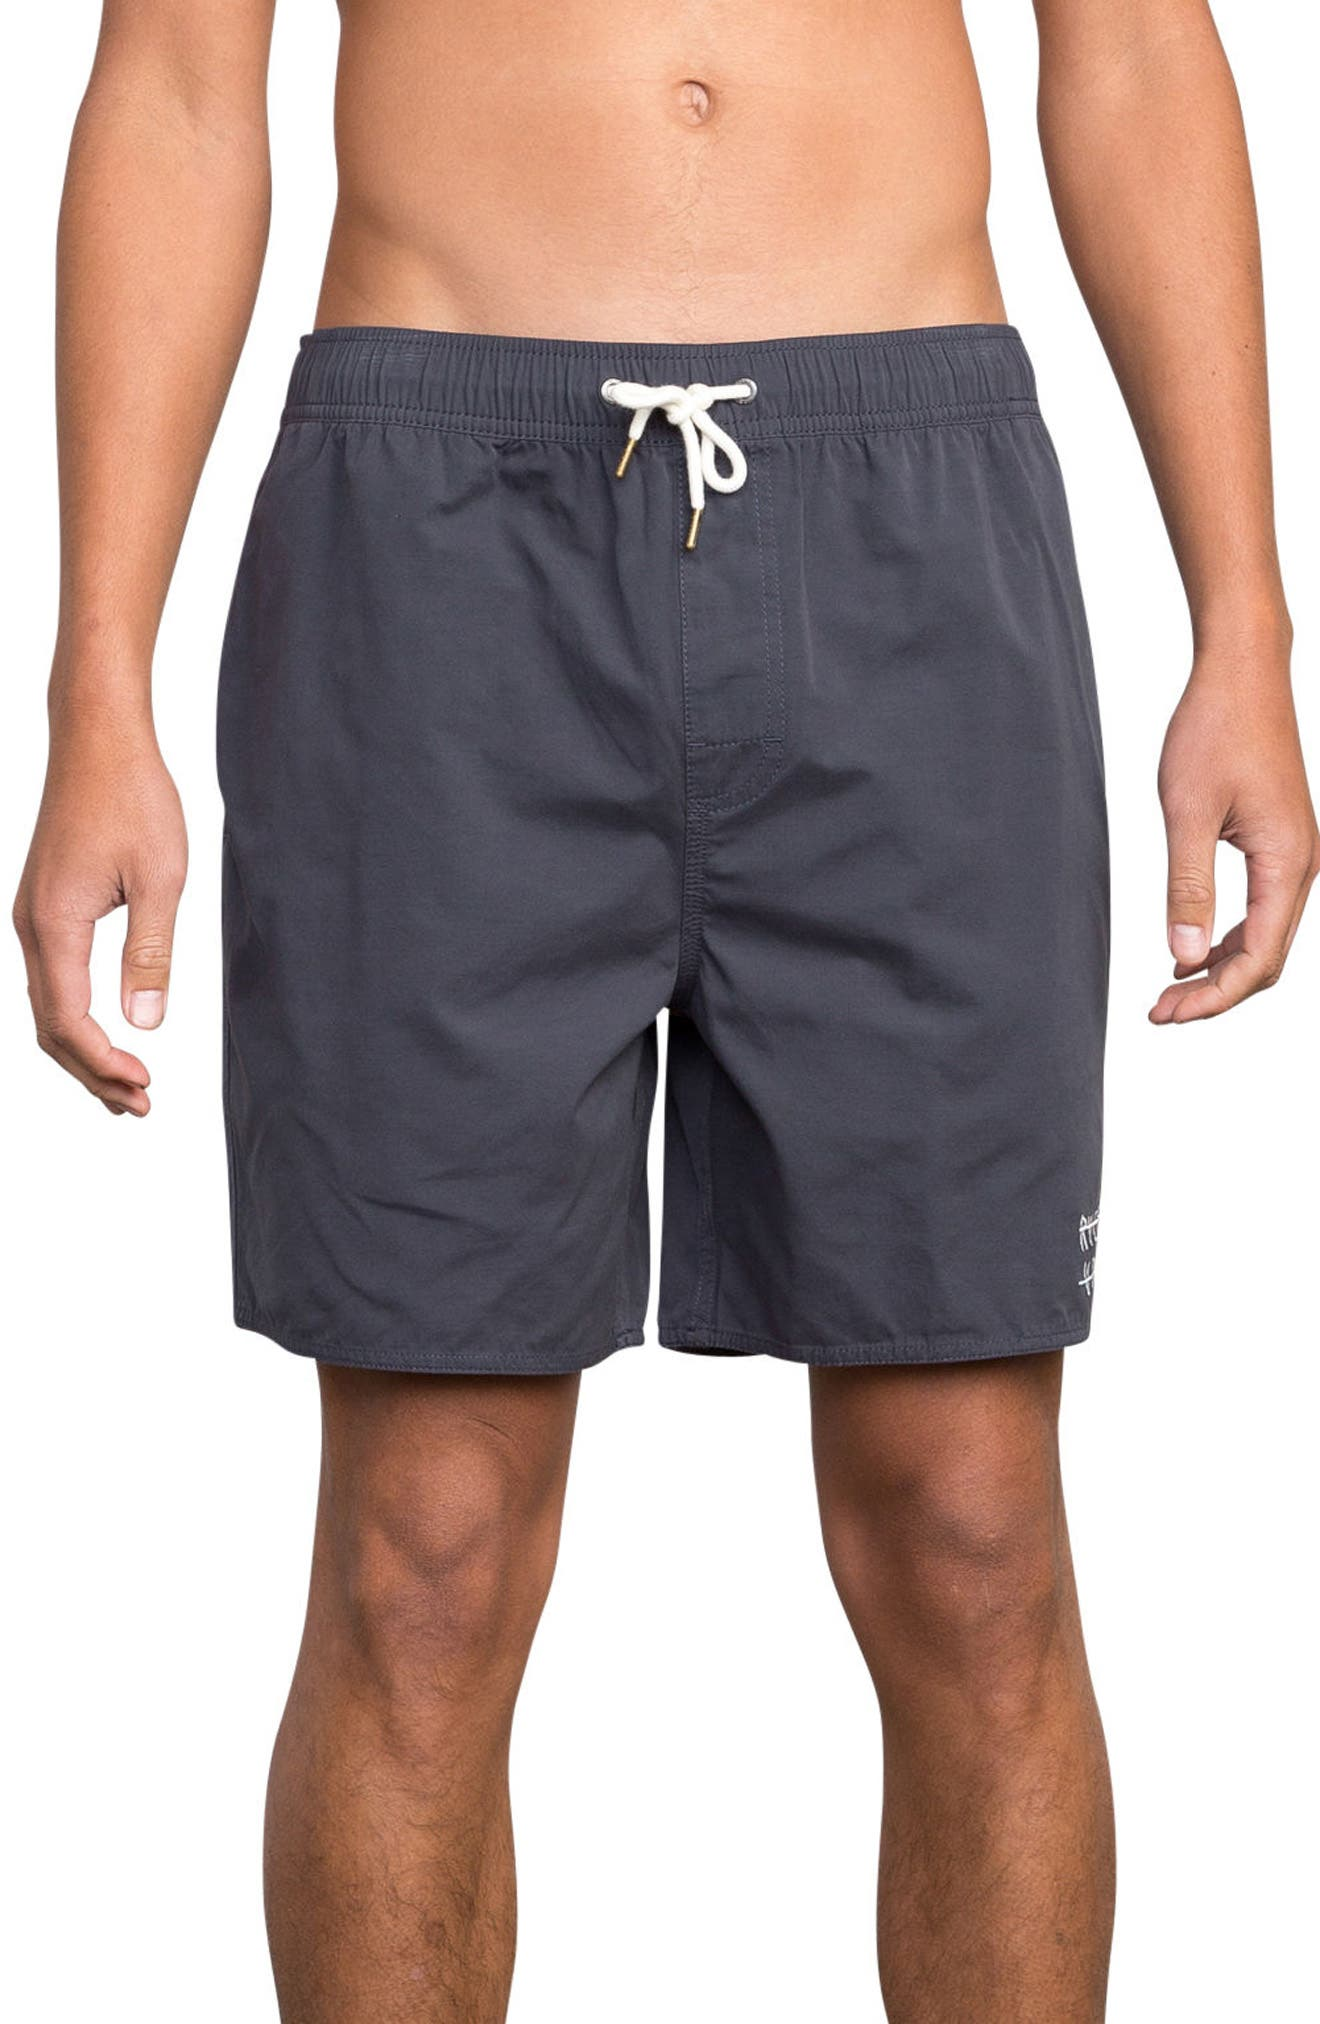 Horton Swim Trunks,                         Main,                         color, SLATE